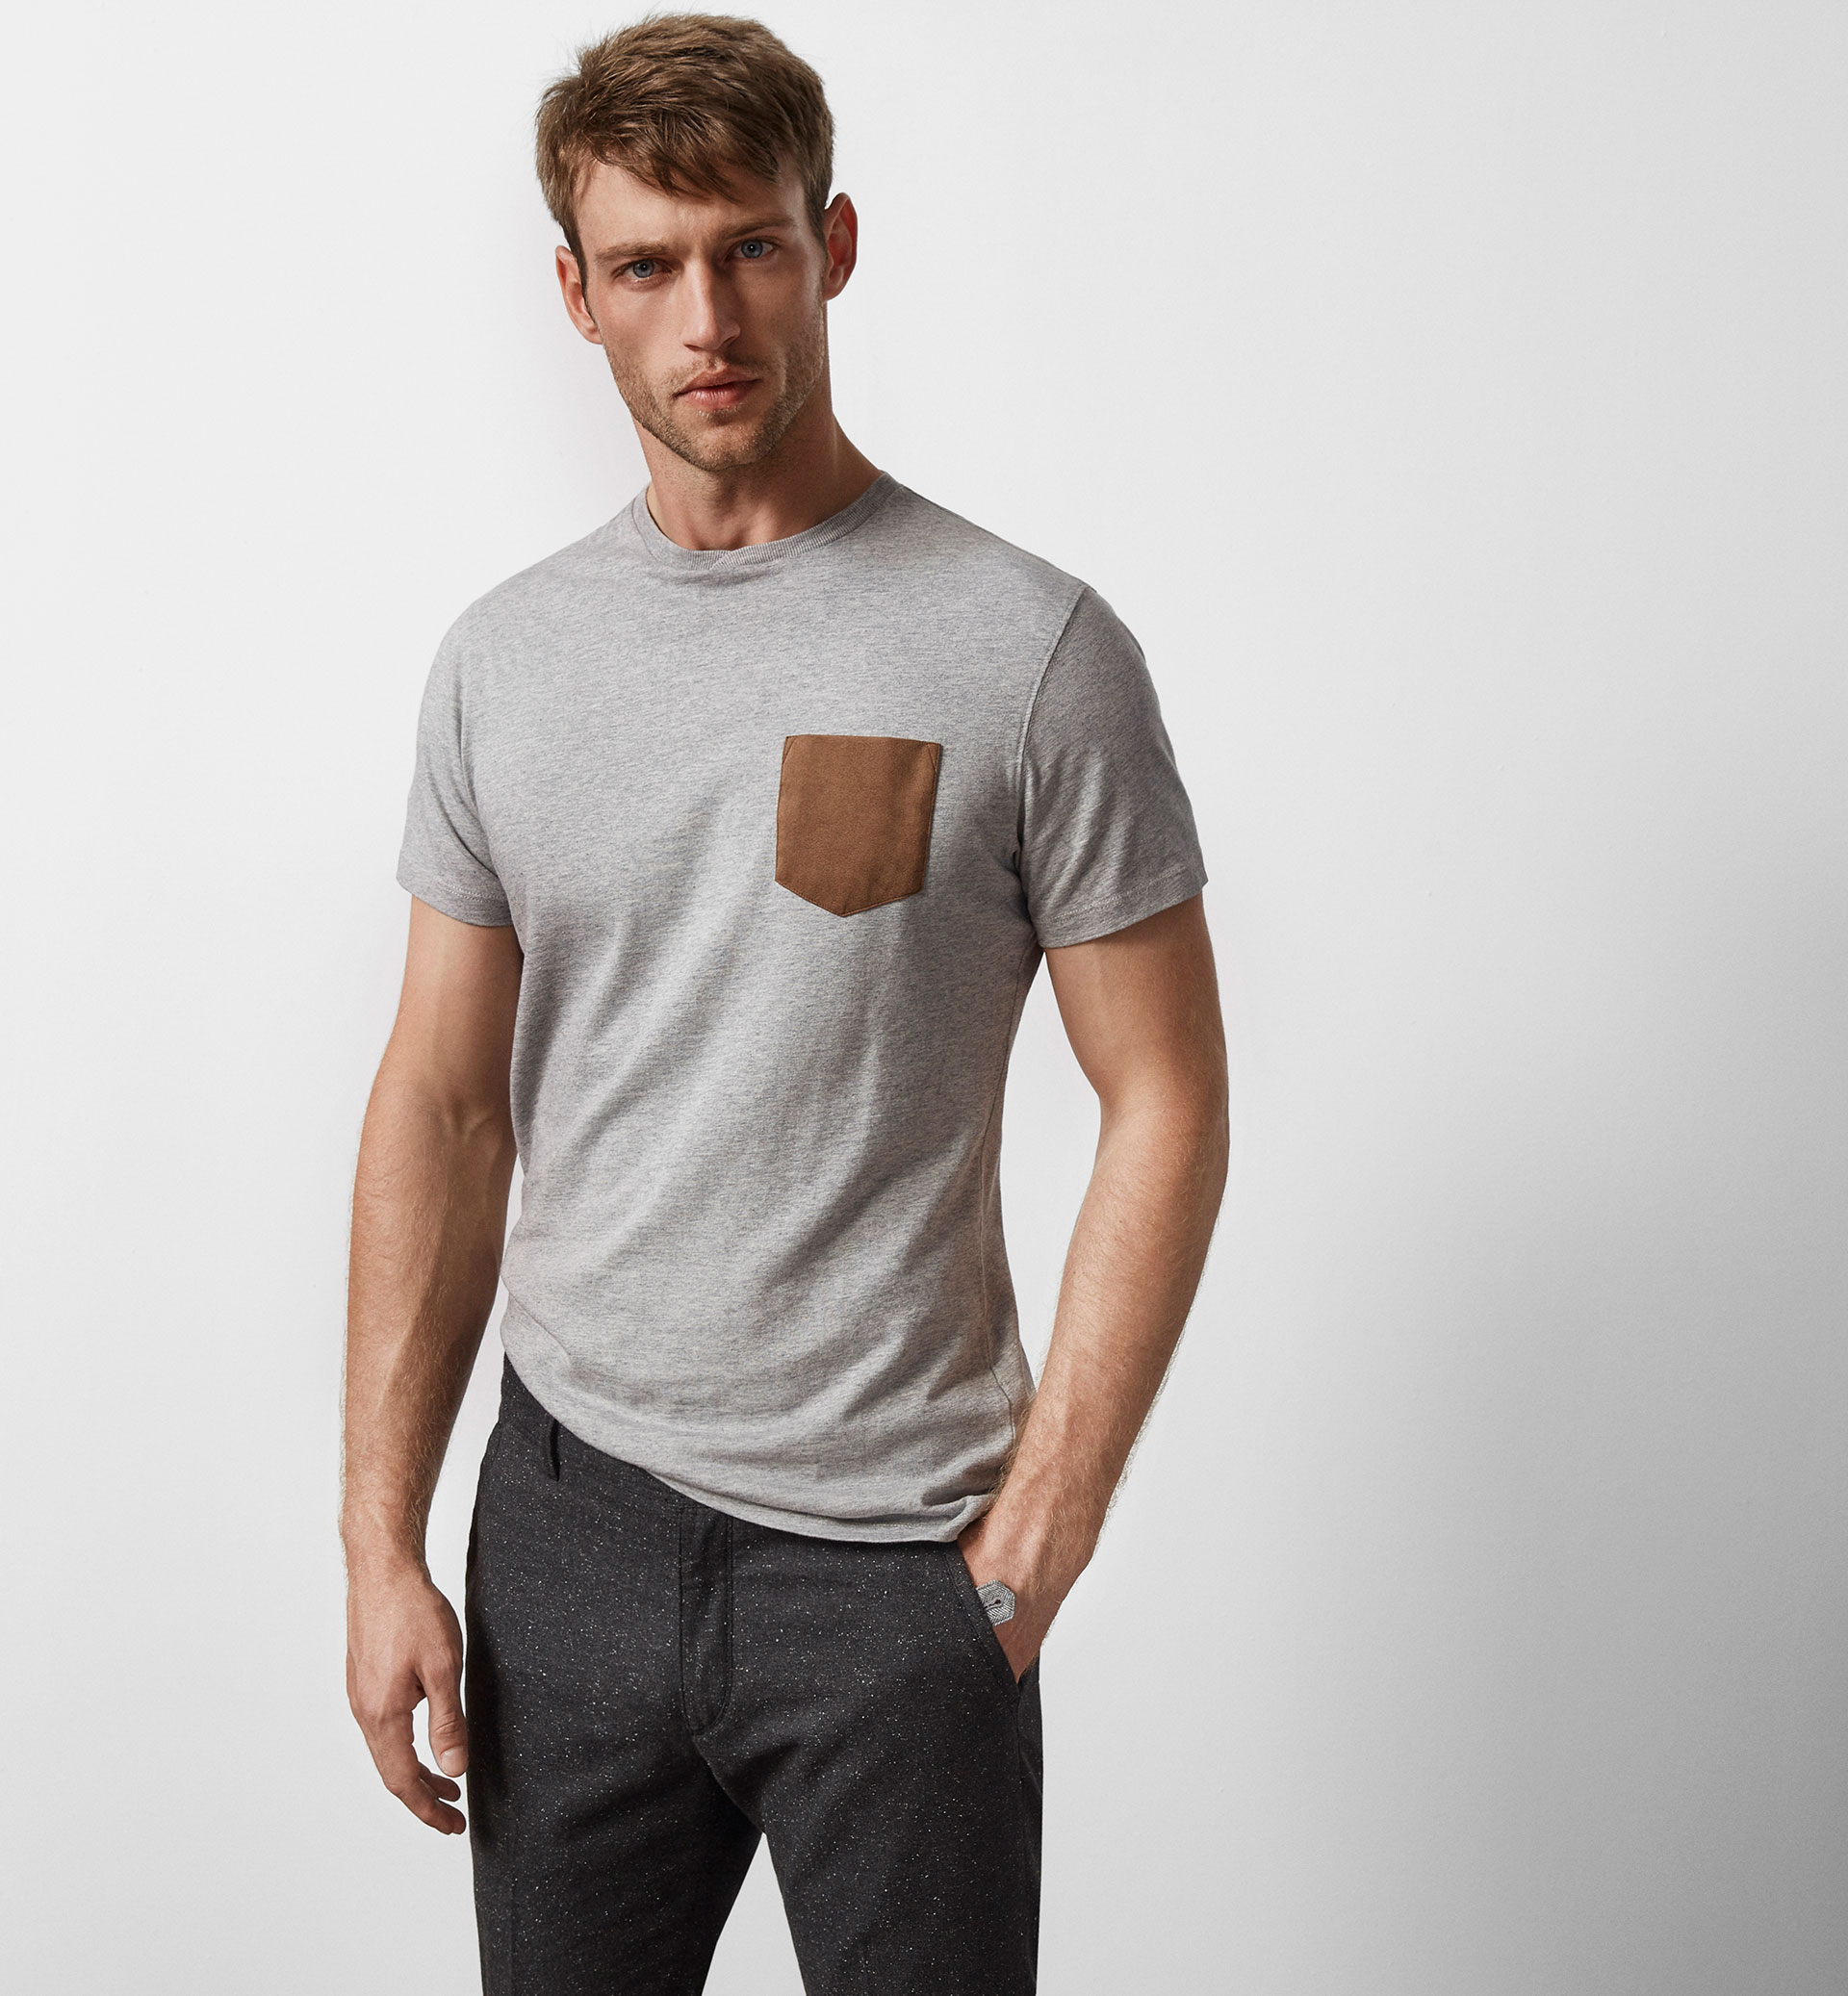 LIMITED EDITION T-SHIRT WITH A CONTRASTING POCKET